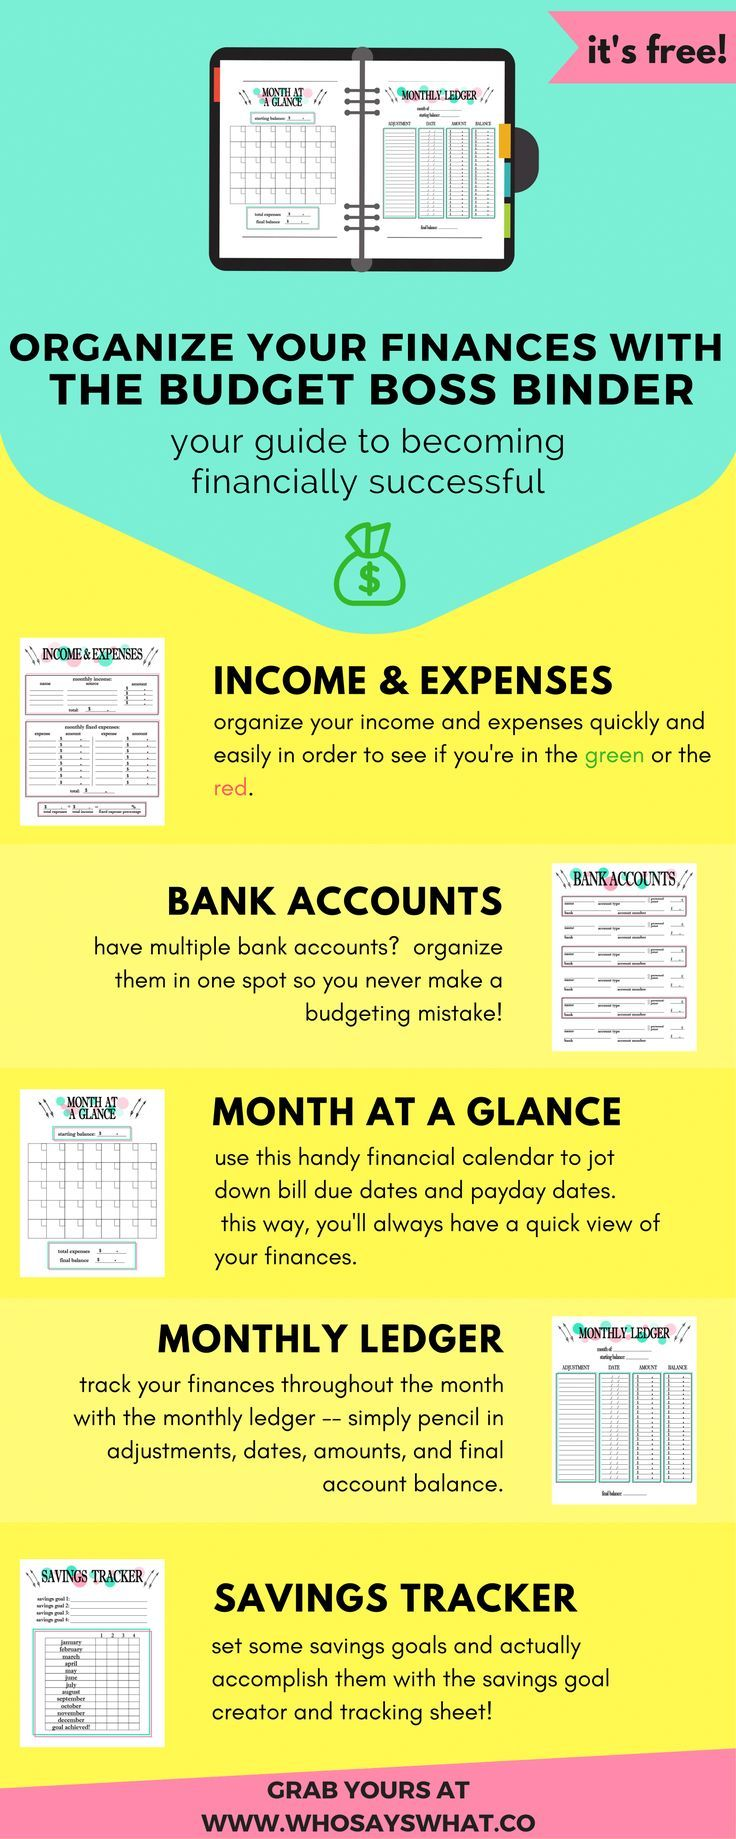 Budget Binder | Budget Organization | How To Budget | Budget Tips | Budget Success | Budget Printables | Budget Worksheets | Free Printables | Personal Finance | Budget For Beginners | Budget Tracking